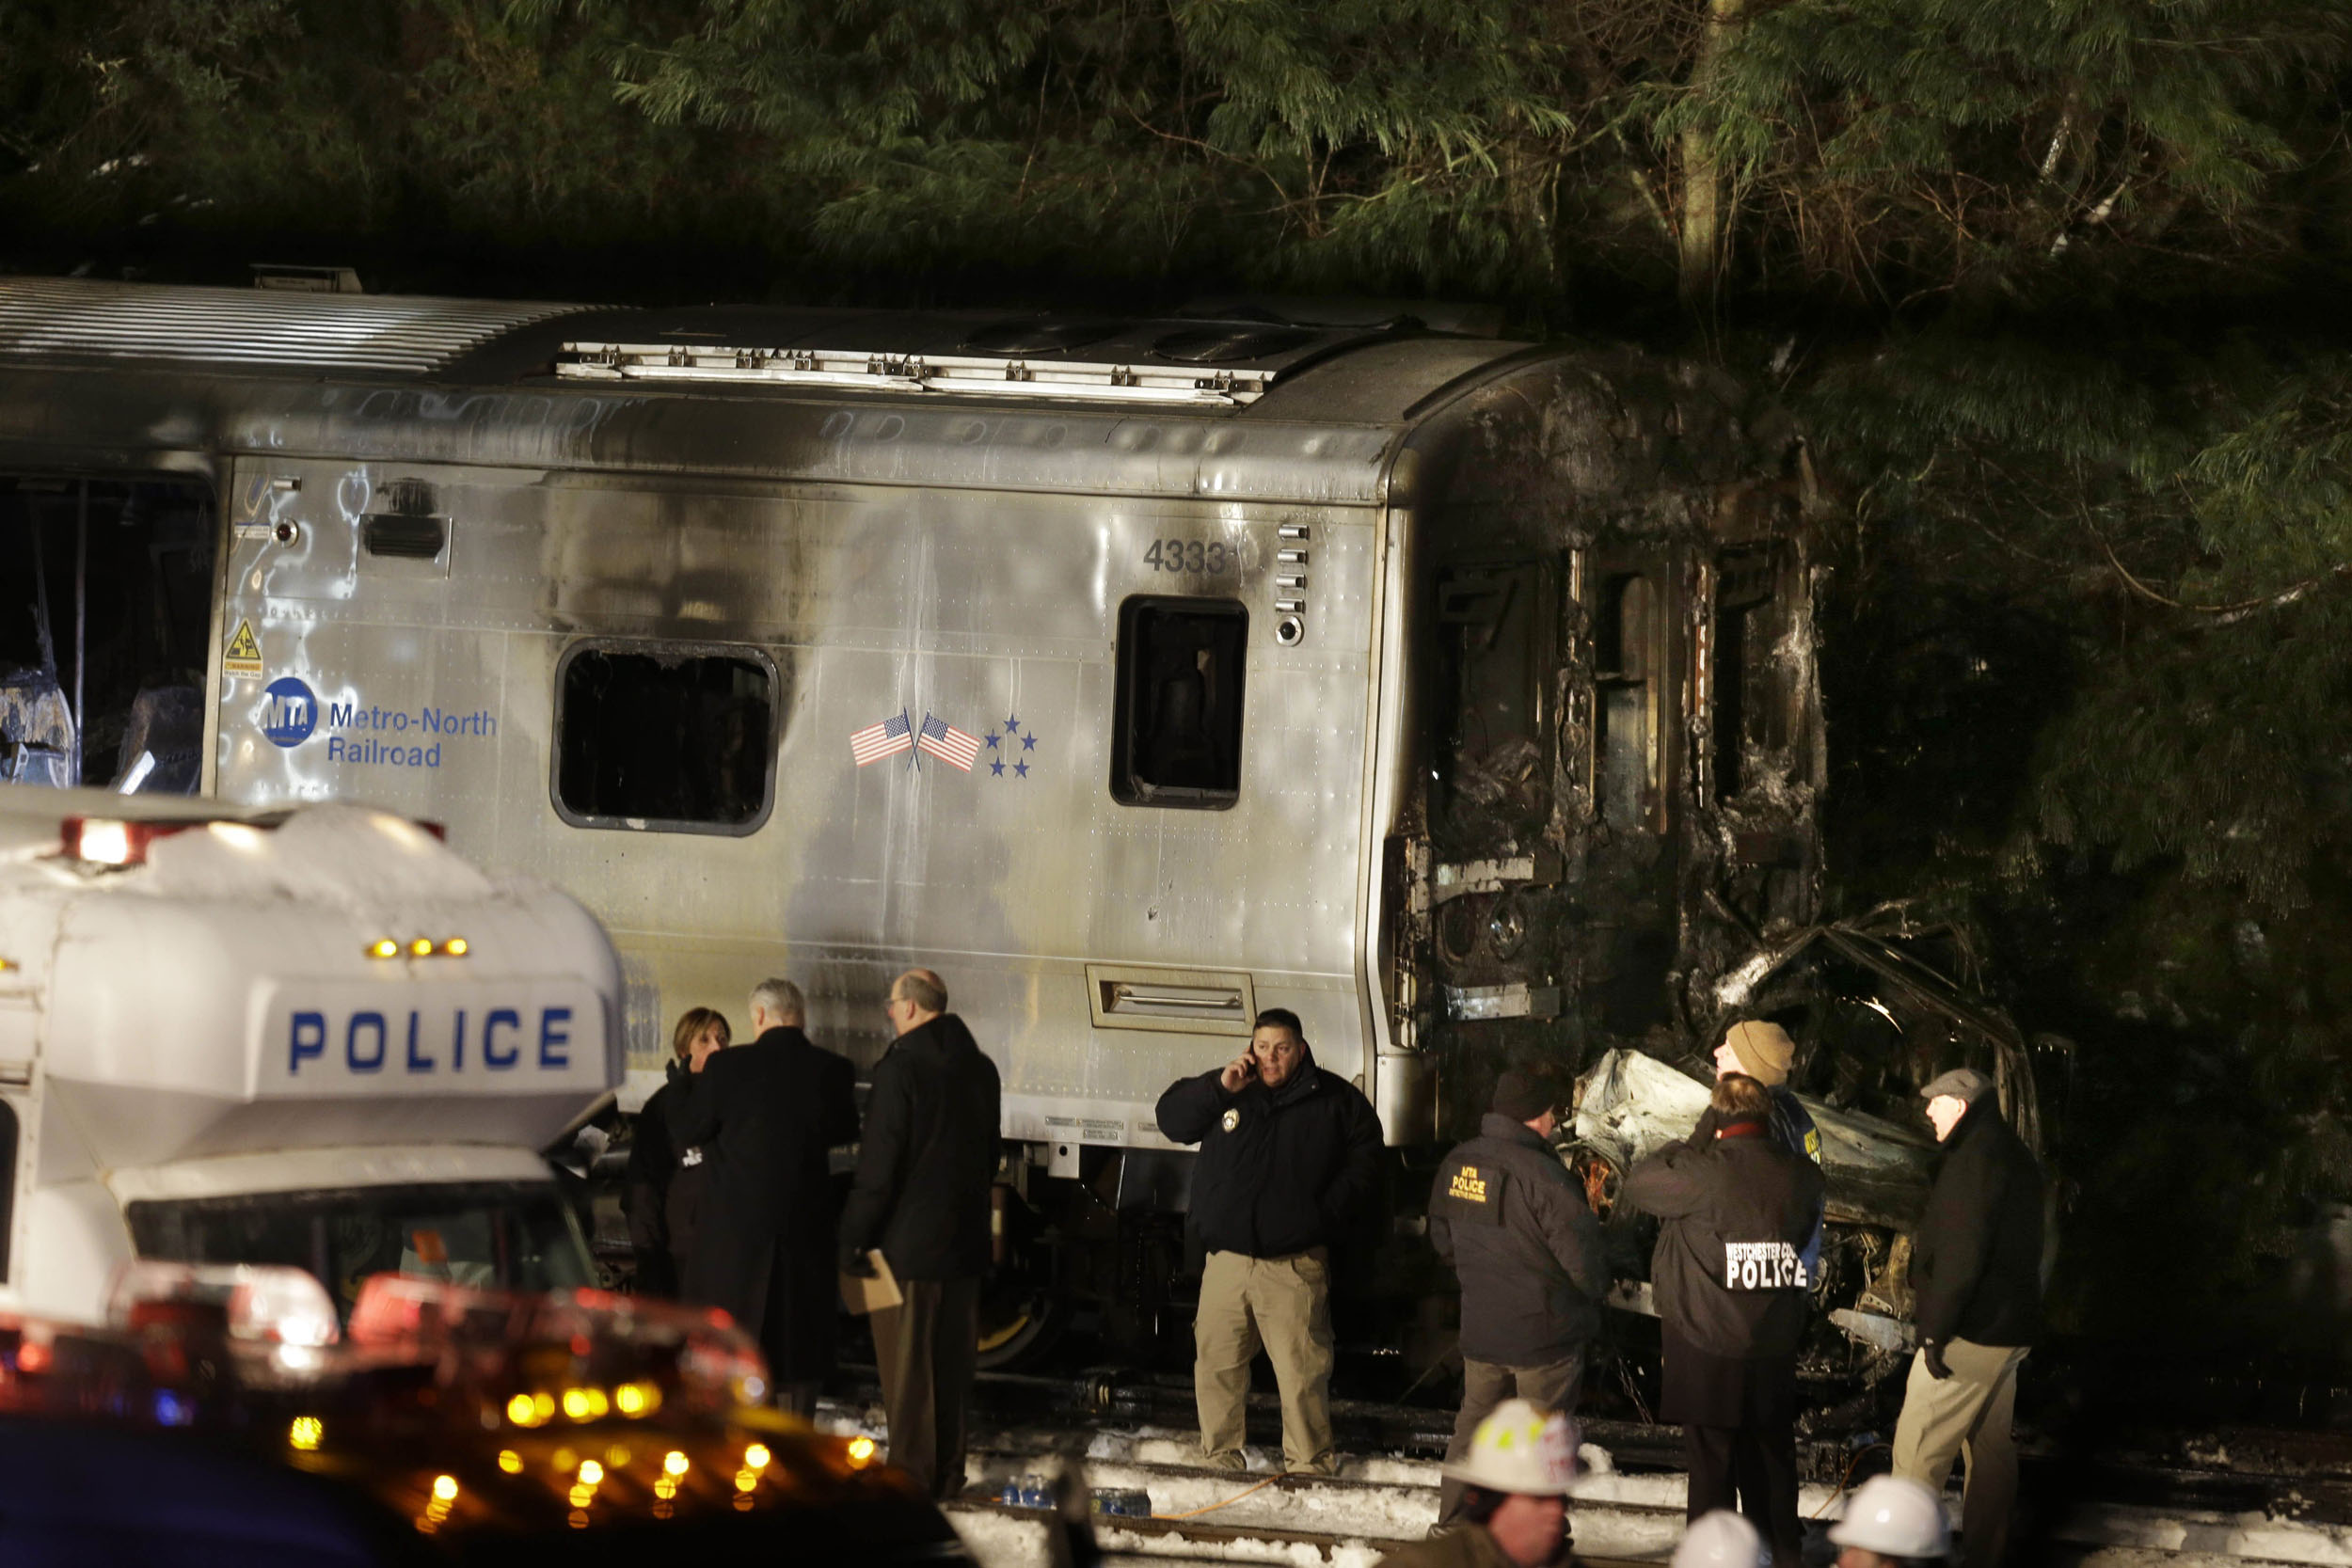 Emergency personnel work at the scene of a Metro-North Railroad passenger train and vehicle accident in Valhalla, N.Y., Feb. 3, 2015.